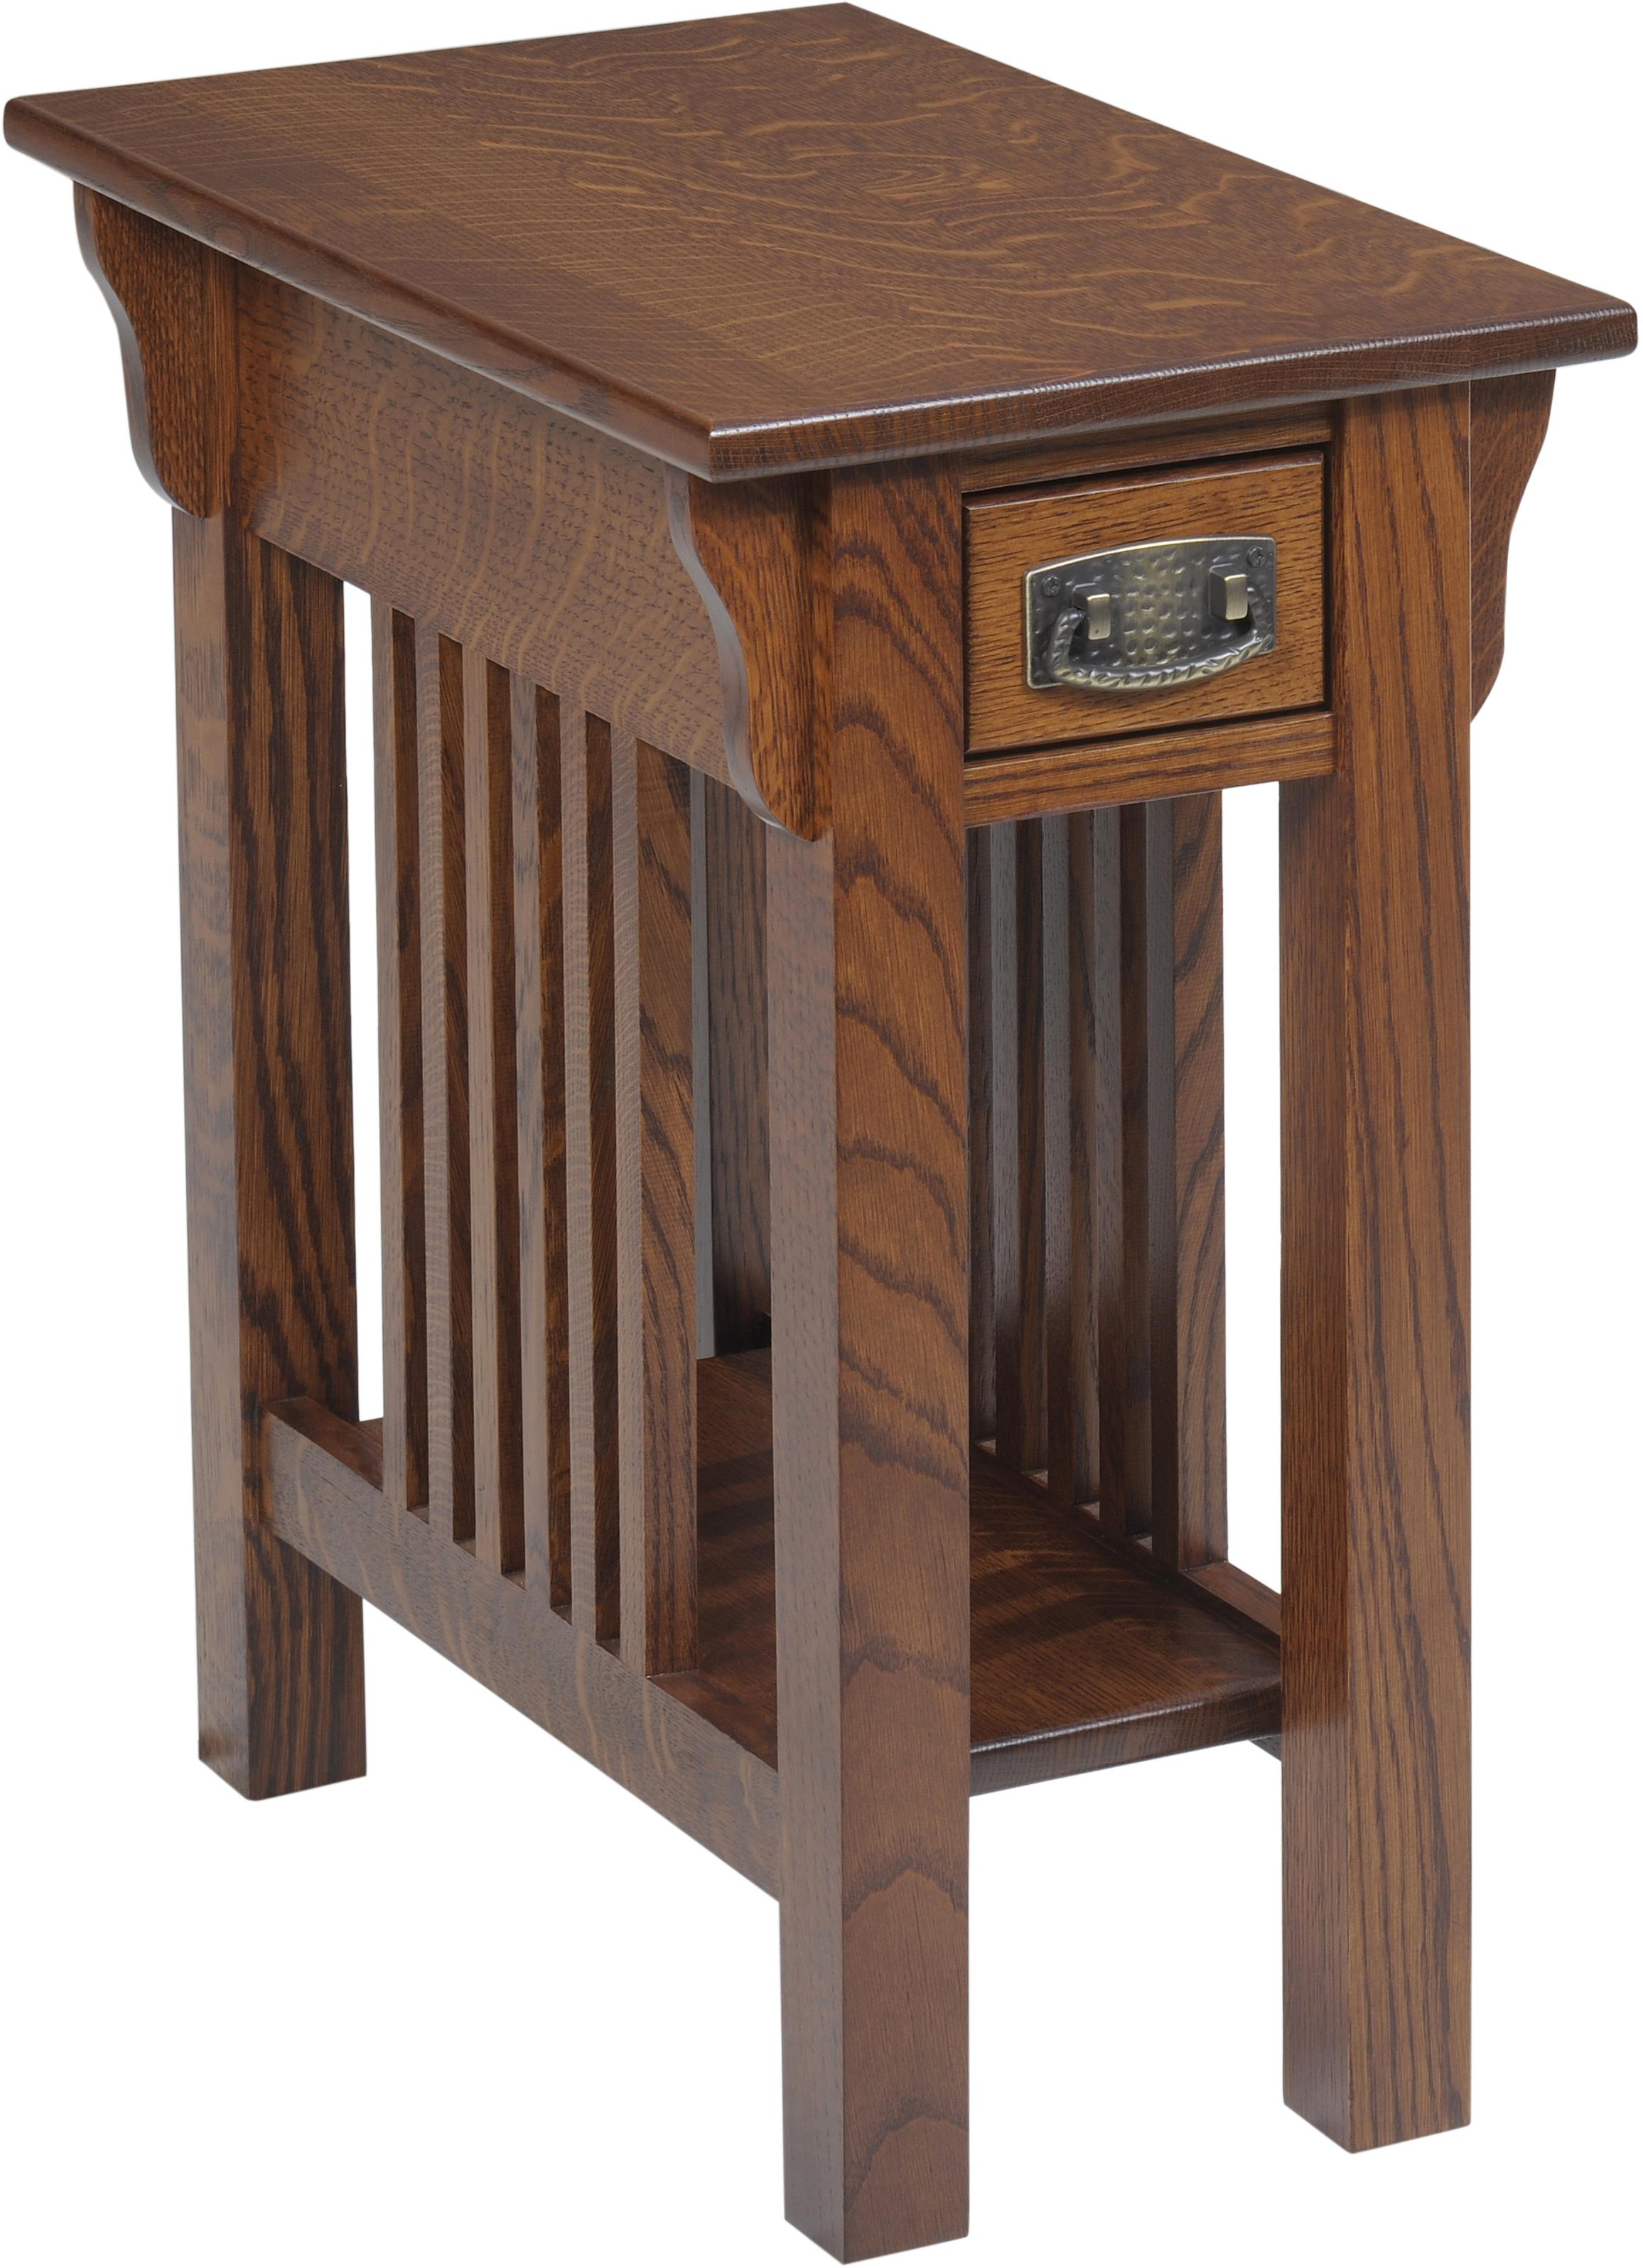 Lexington Mission Chairside Table by Y & T Woodcraft at Saugerties Furniture Mart